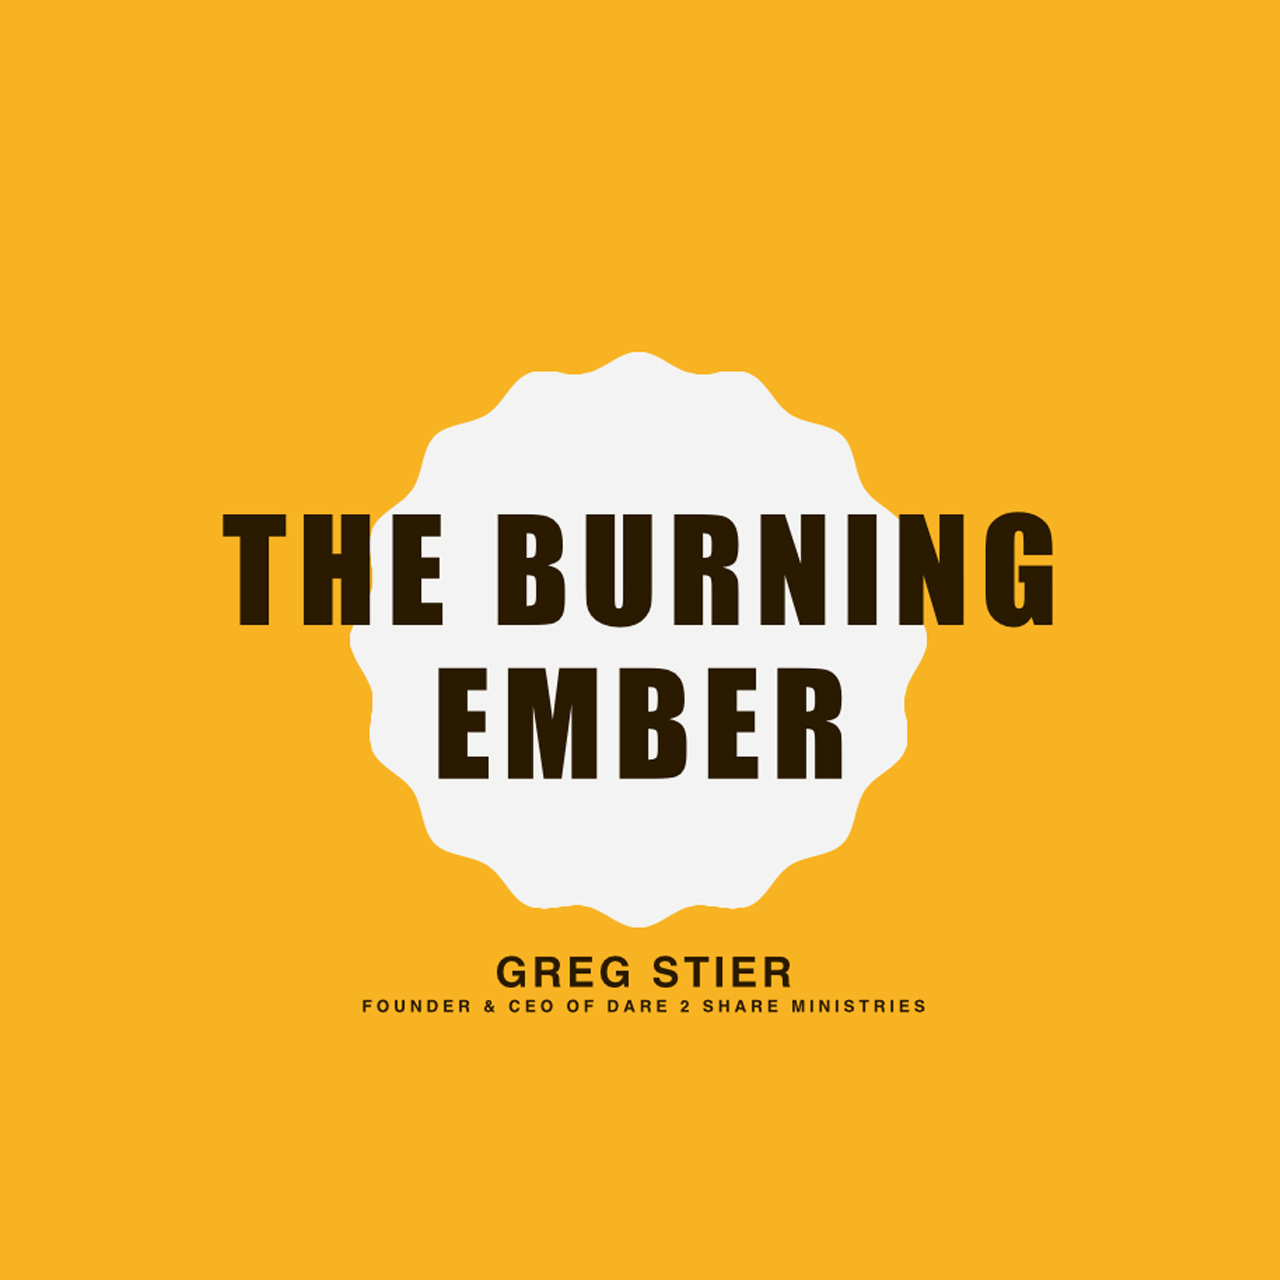 The Burning Embers